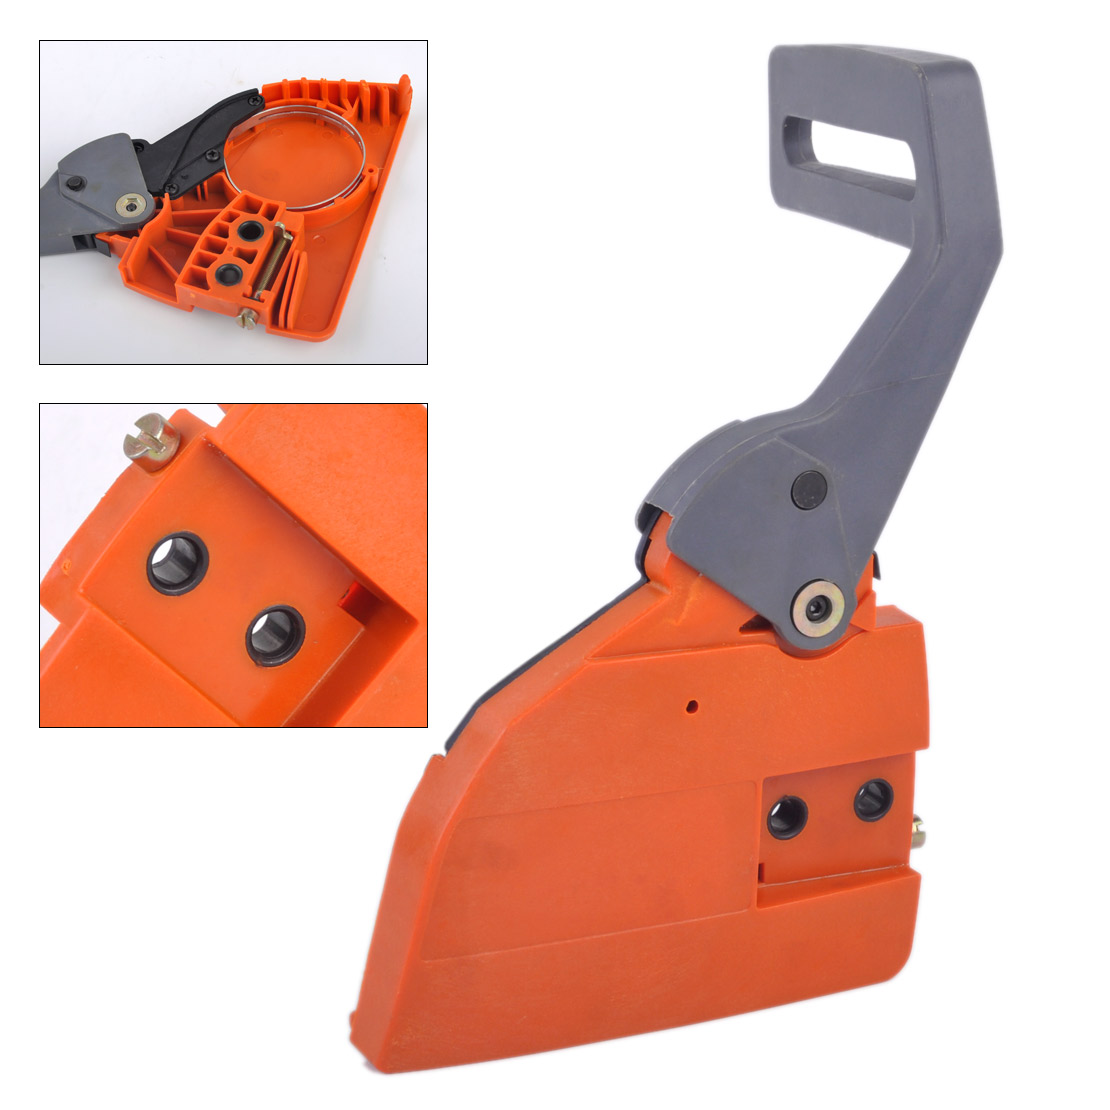 LETAOSK New Clutch Sprocket Chain Cover Brake Handle Assy Fit For HUSQVARNA 136 137 141 142 Chainsaw